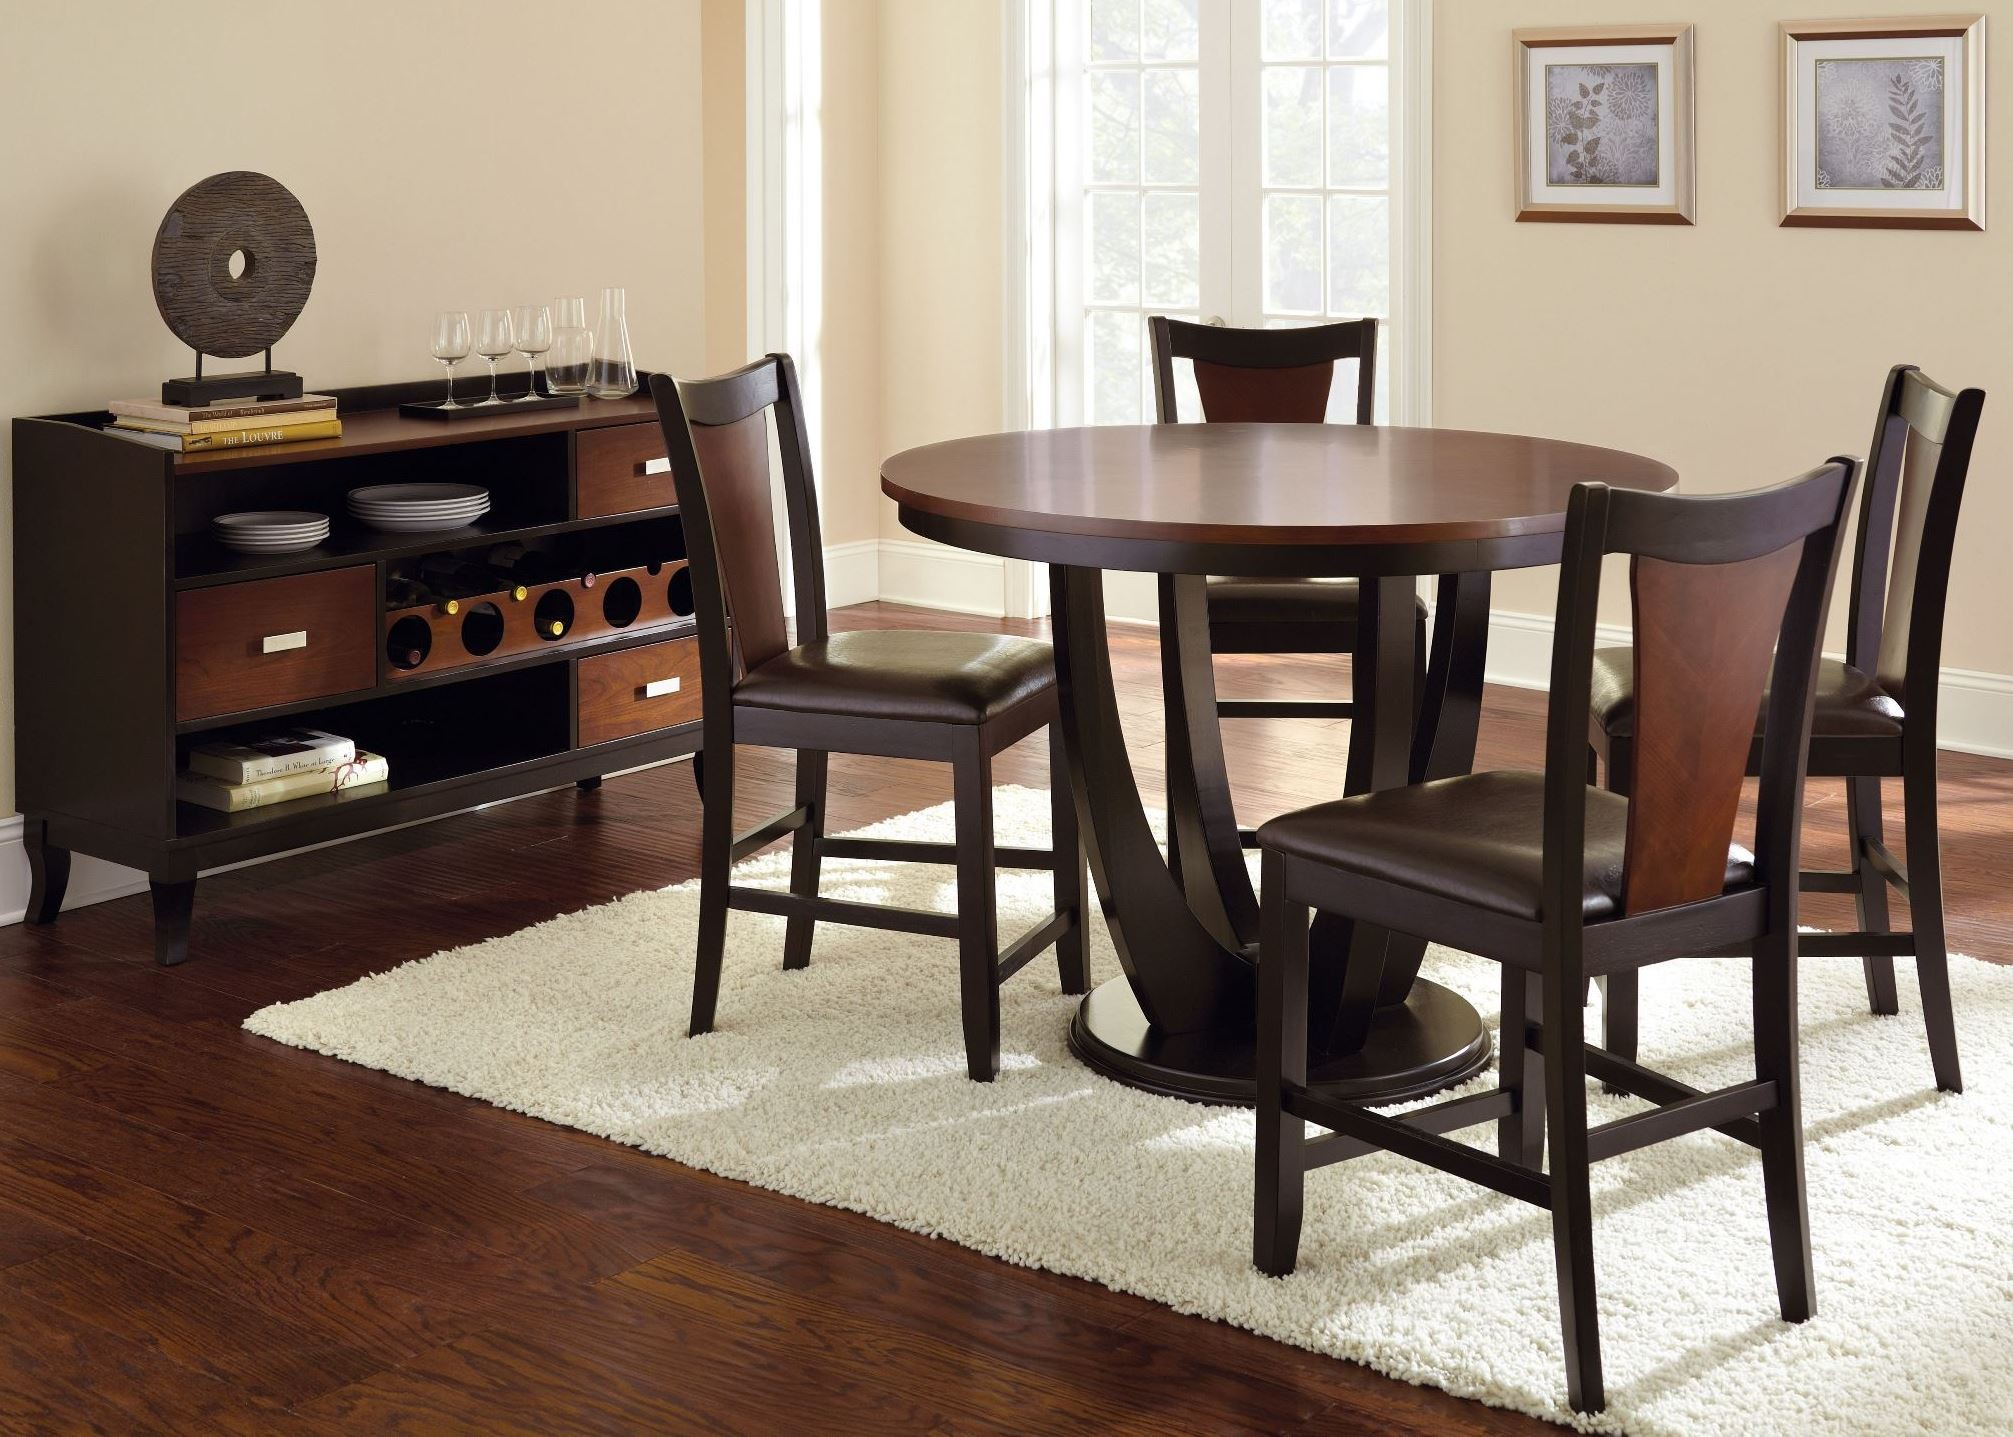 Counter Height Round Dining Set : ... Furniture > Dining Sets > Oakton Round Counter Height Dining Room Set